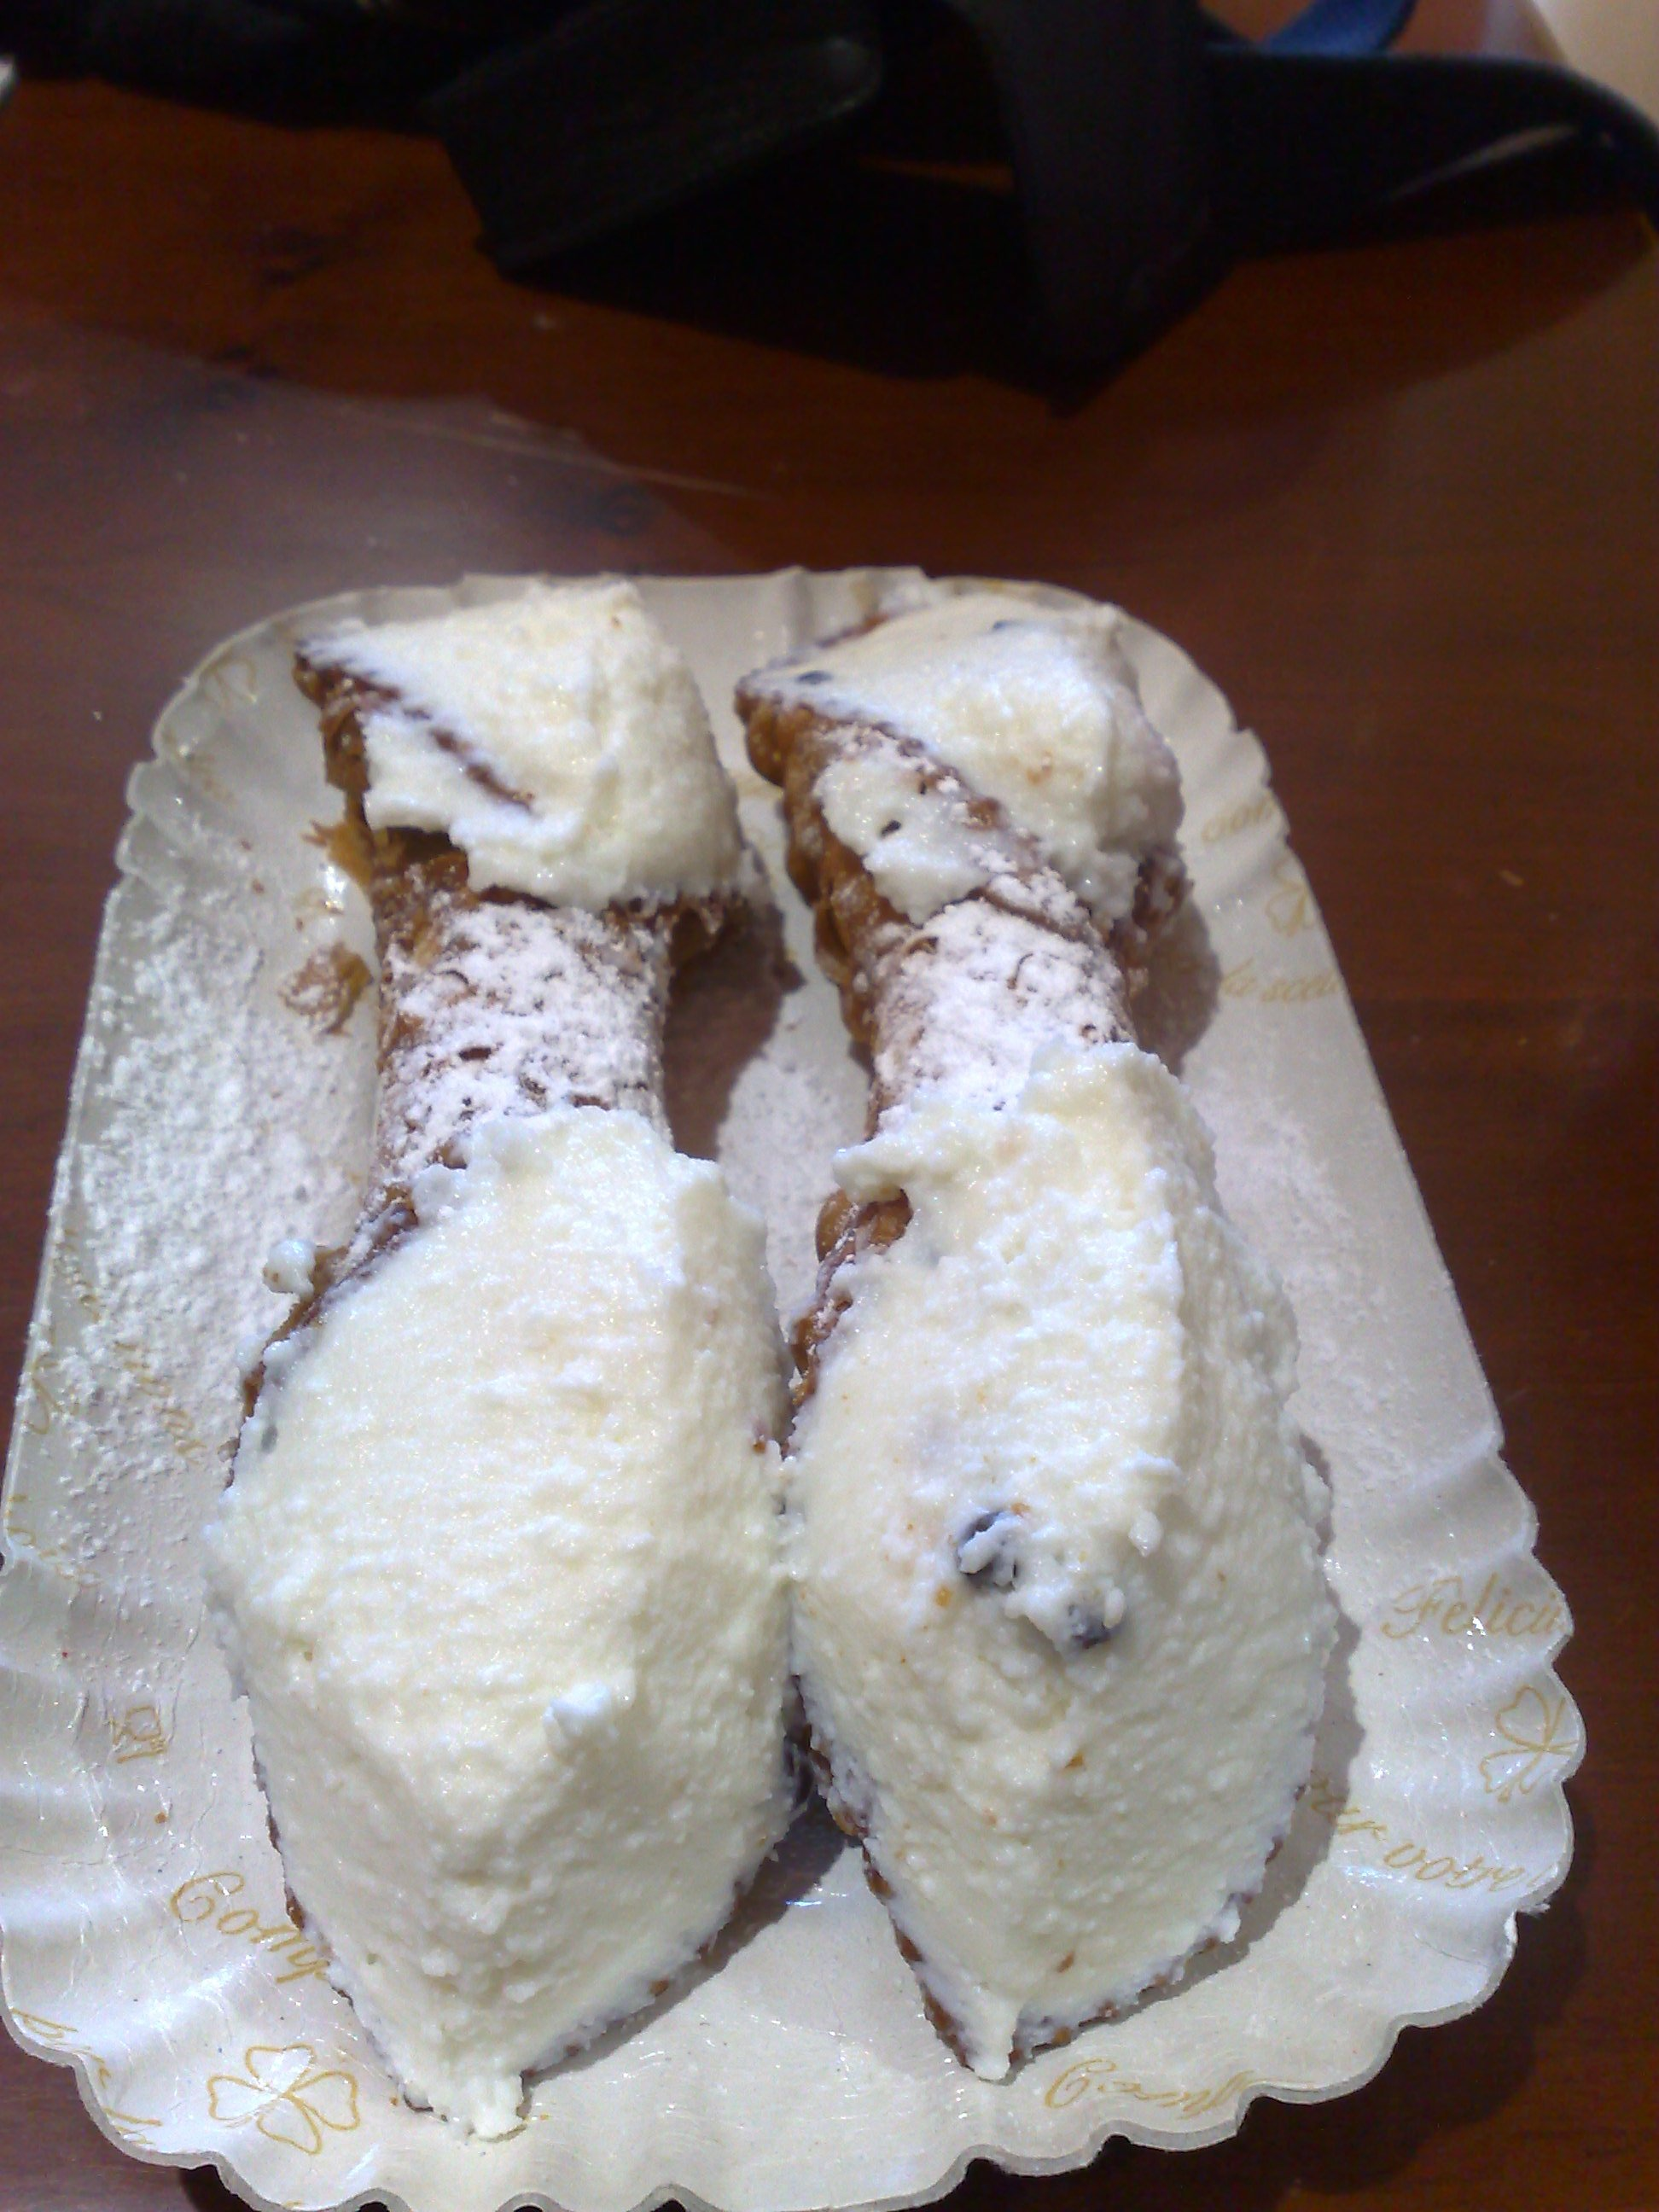 File:Cannoli.jpg - Wikimedia Commons